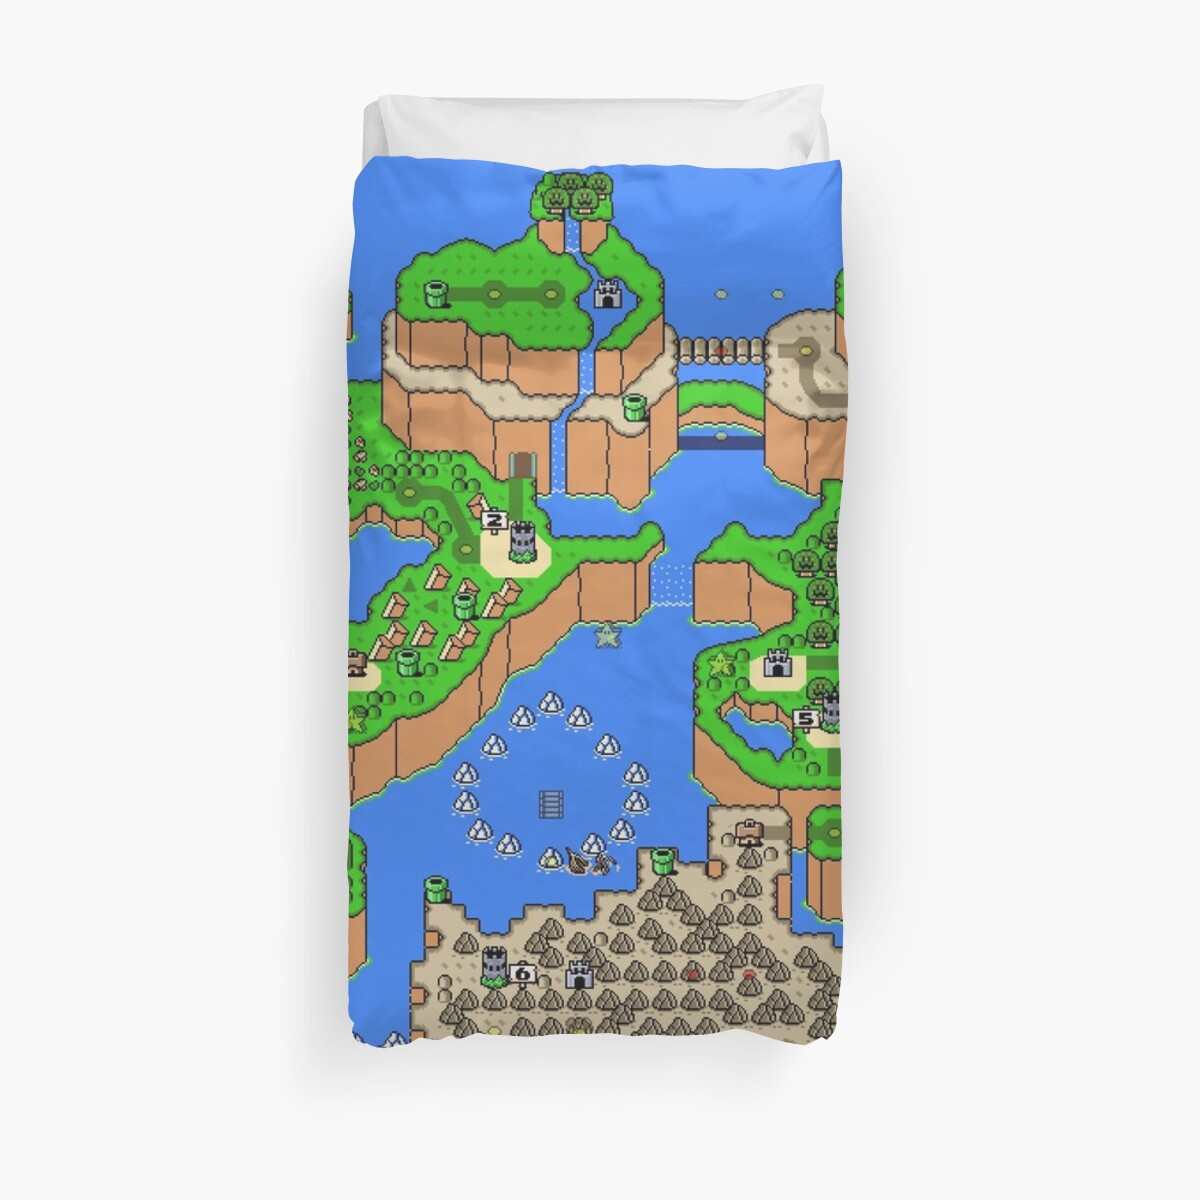 Super mario world map duvet covers by idaspark redbubble super mario world map by idaspark gumiabroncs Image collections